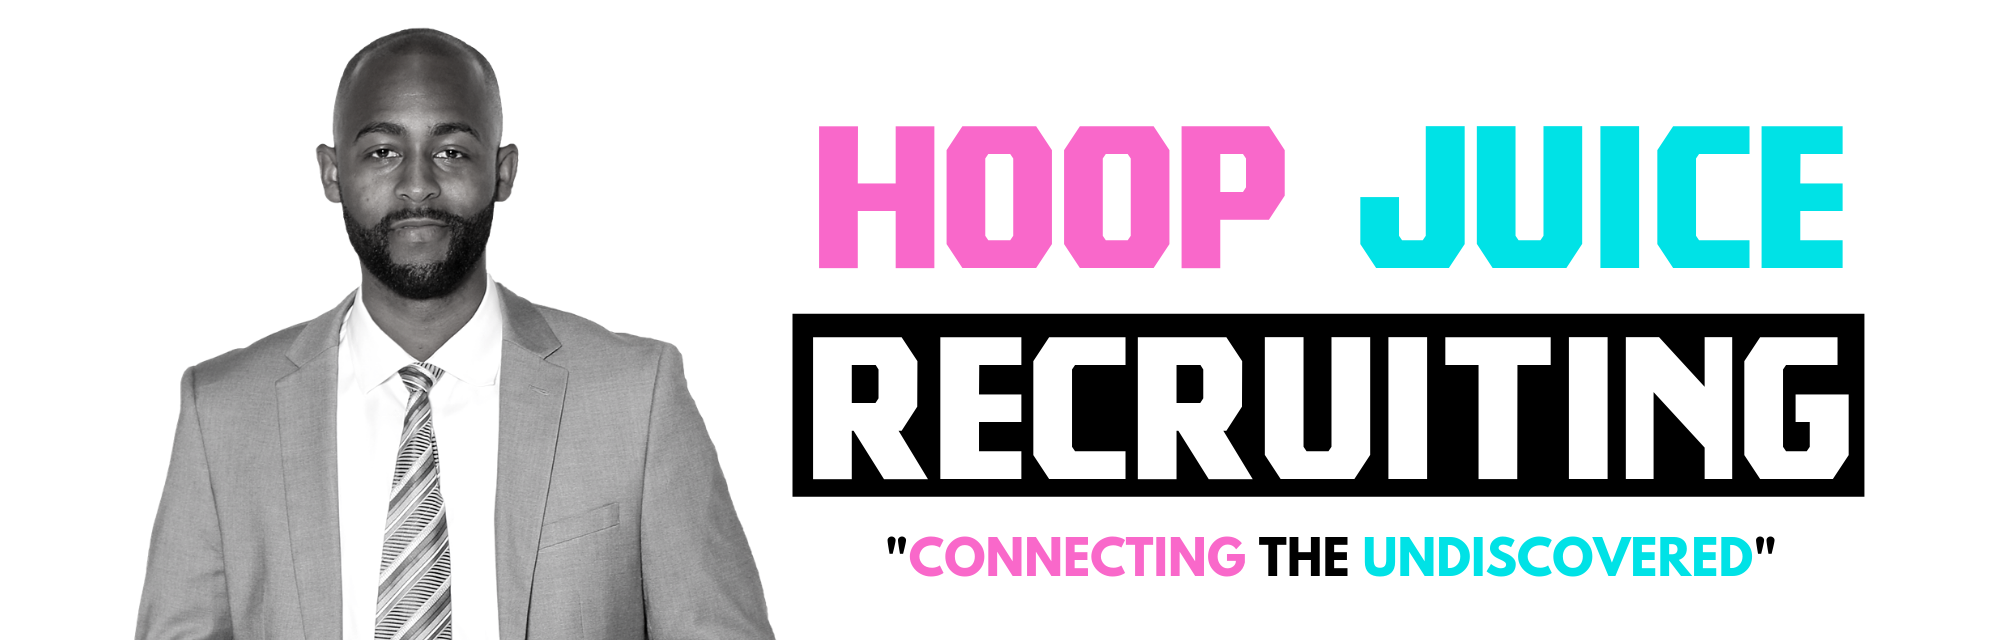 Hoop Juice Recruiting